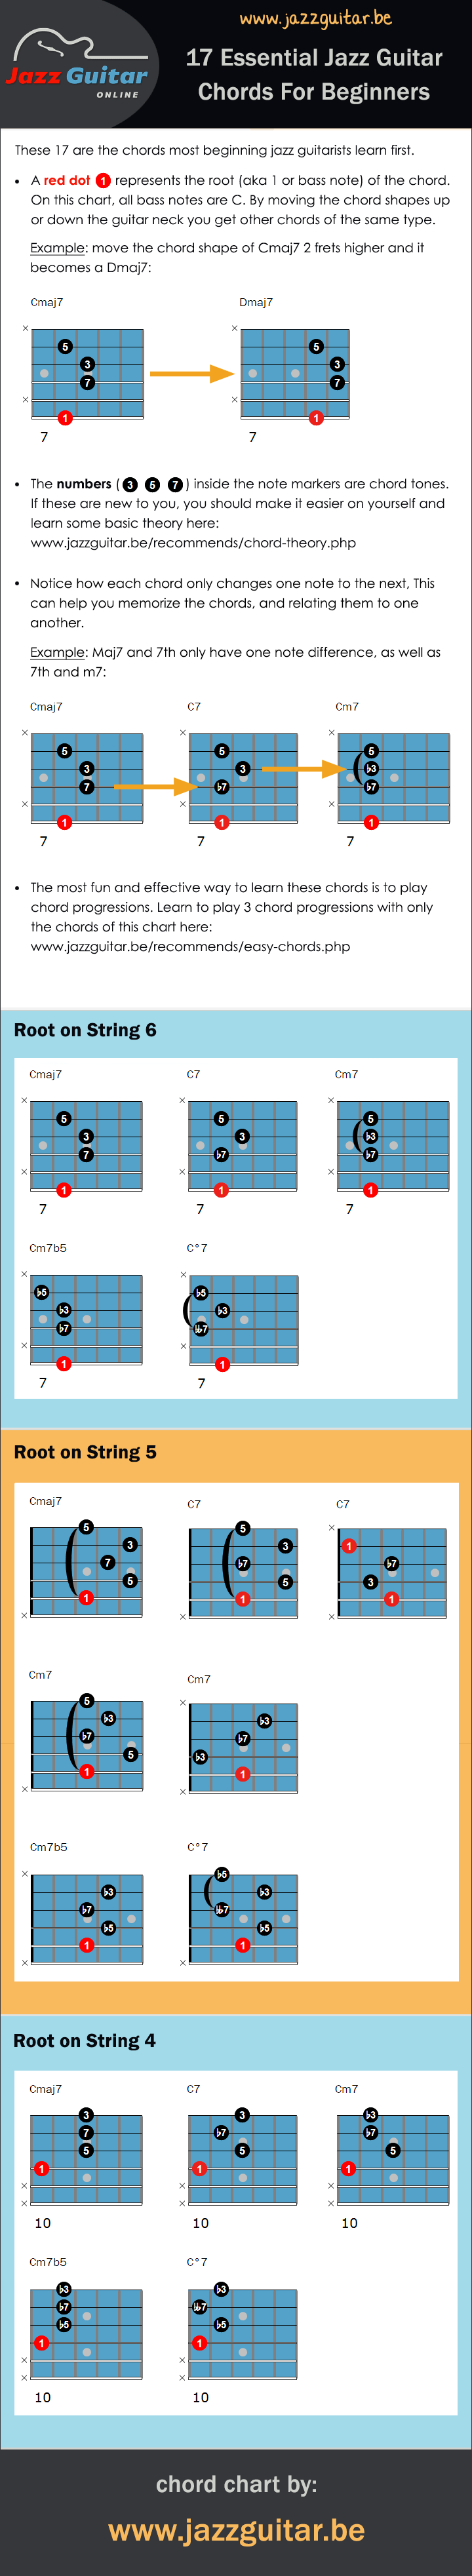 17 th bm hp m cn thit cho ngi bt u hc jazz guitar 17 essential jazz guitar chords for beginners 17 th bm hp m cn thit cho ngi hexwebz Choice Image